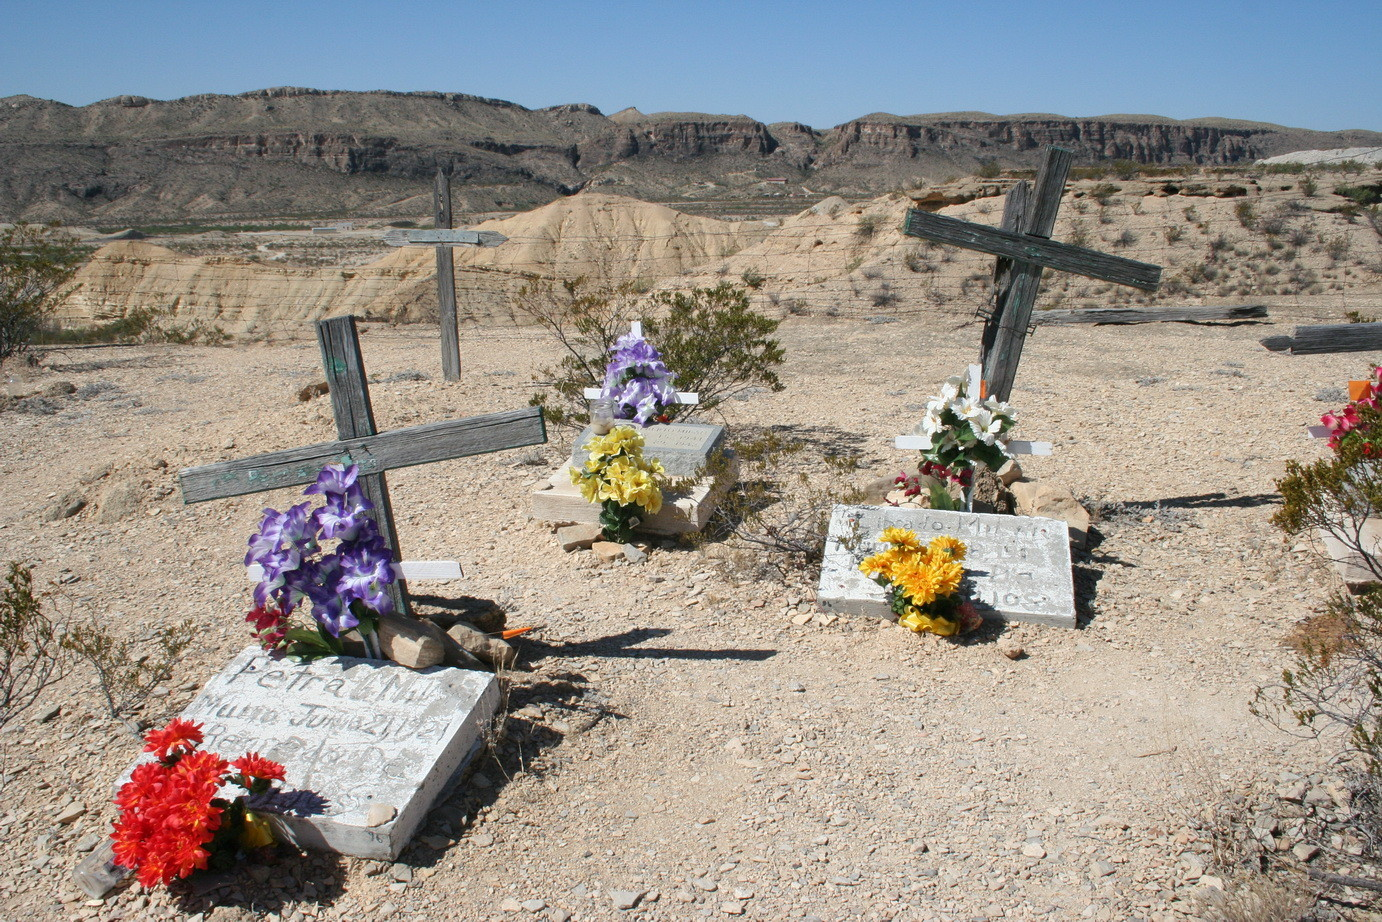 Friedhof in Lajitas